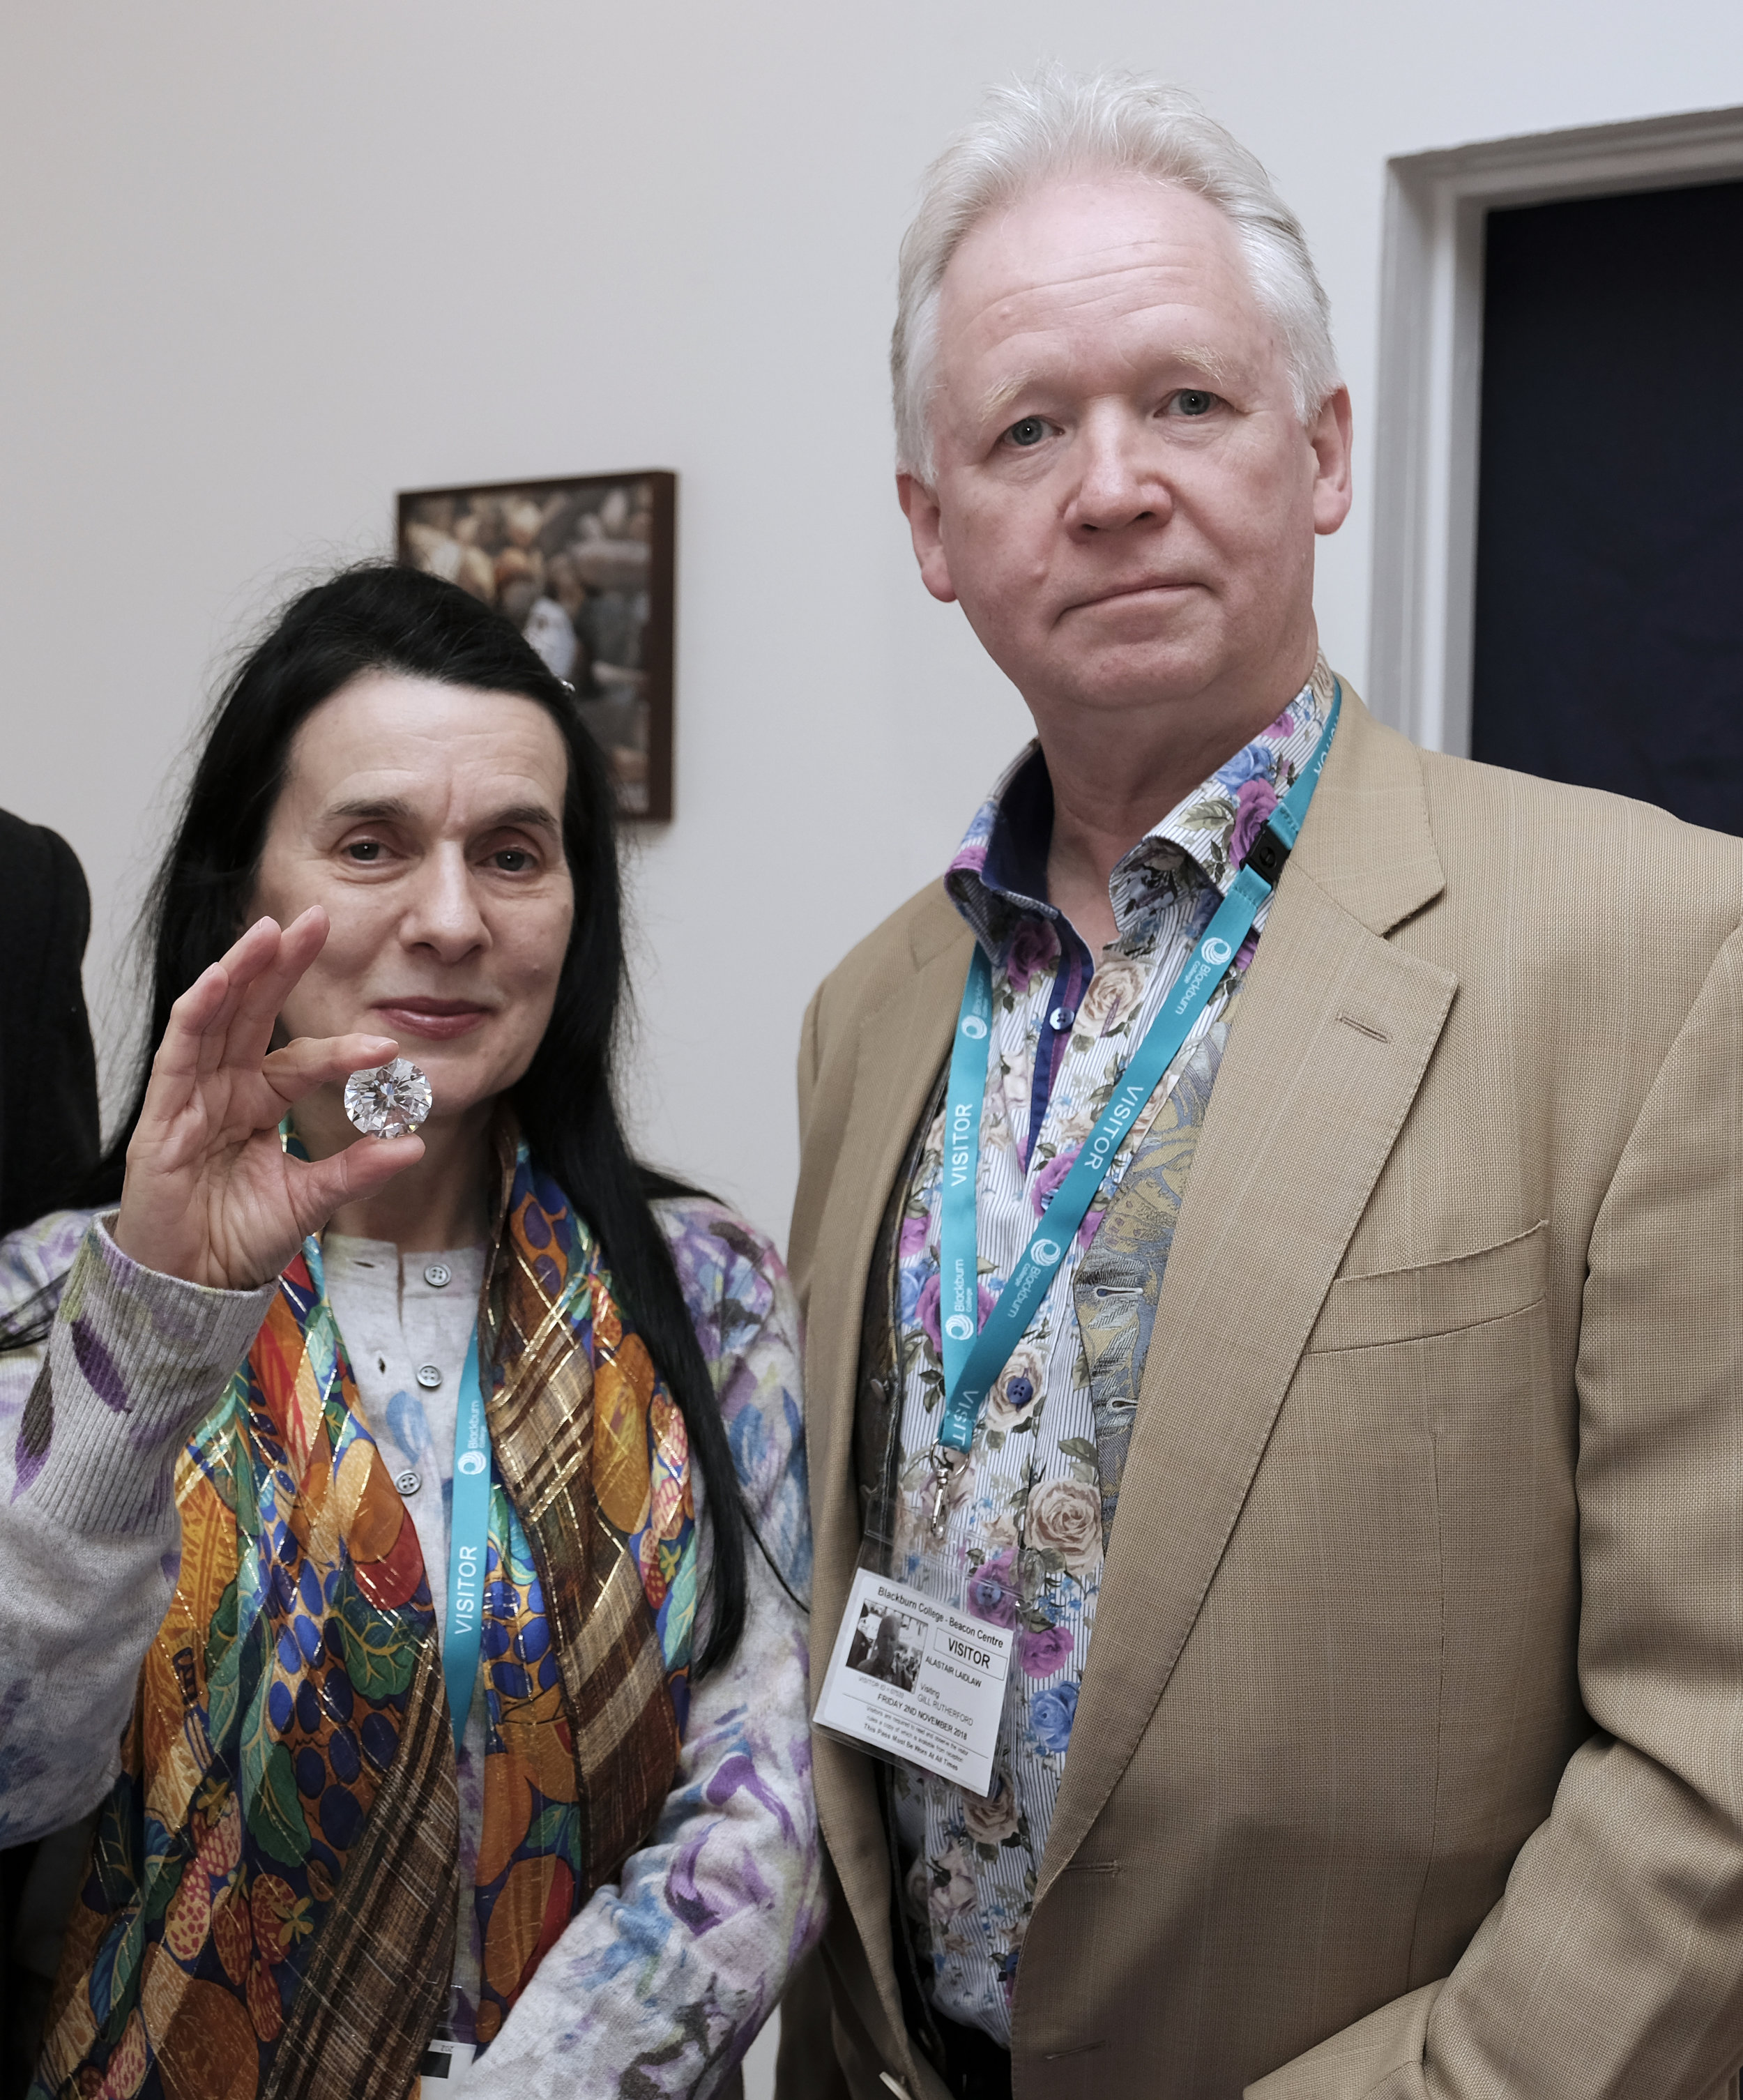 Christine photographed holding a replica of The Cullinan Heritage Diamond, with Alastair